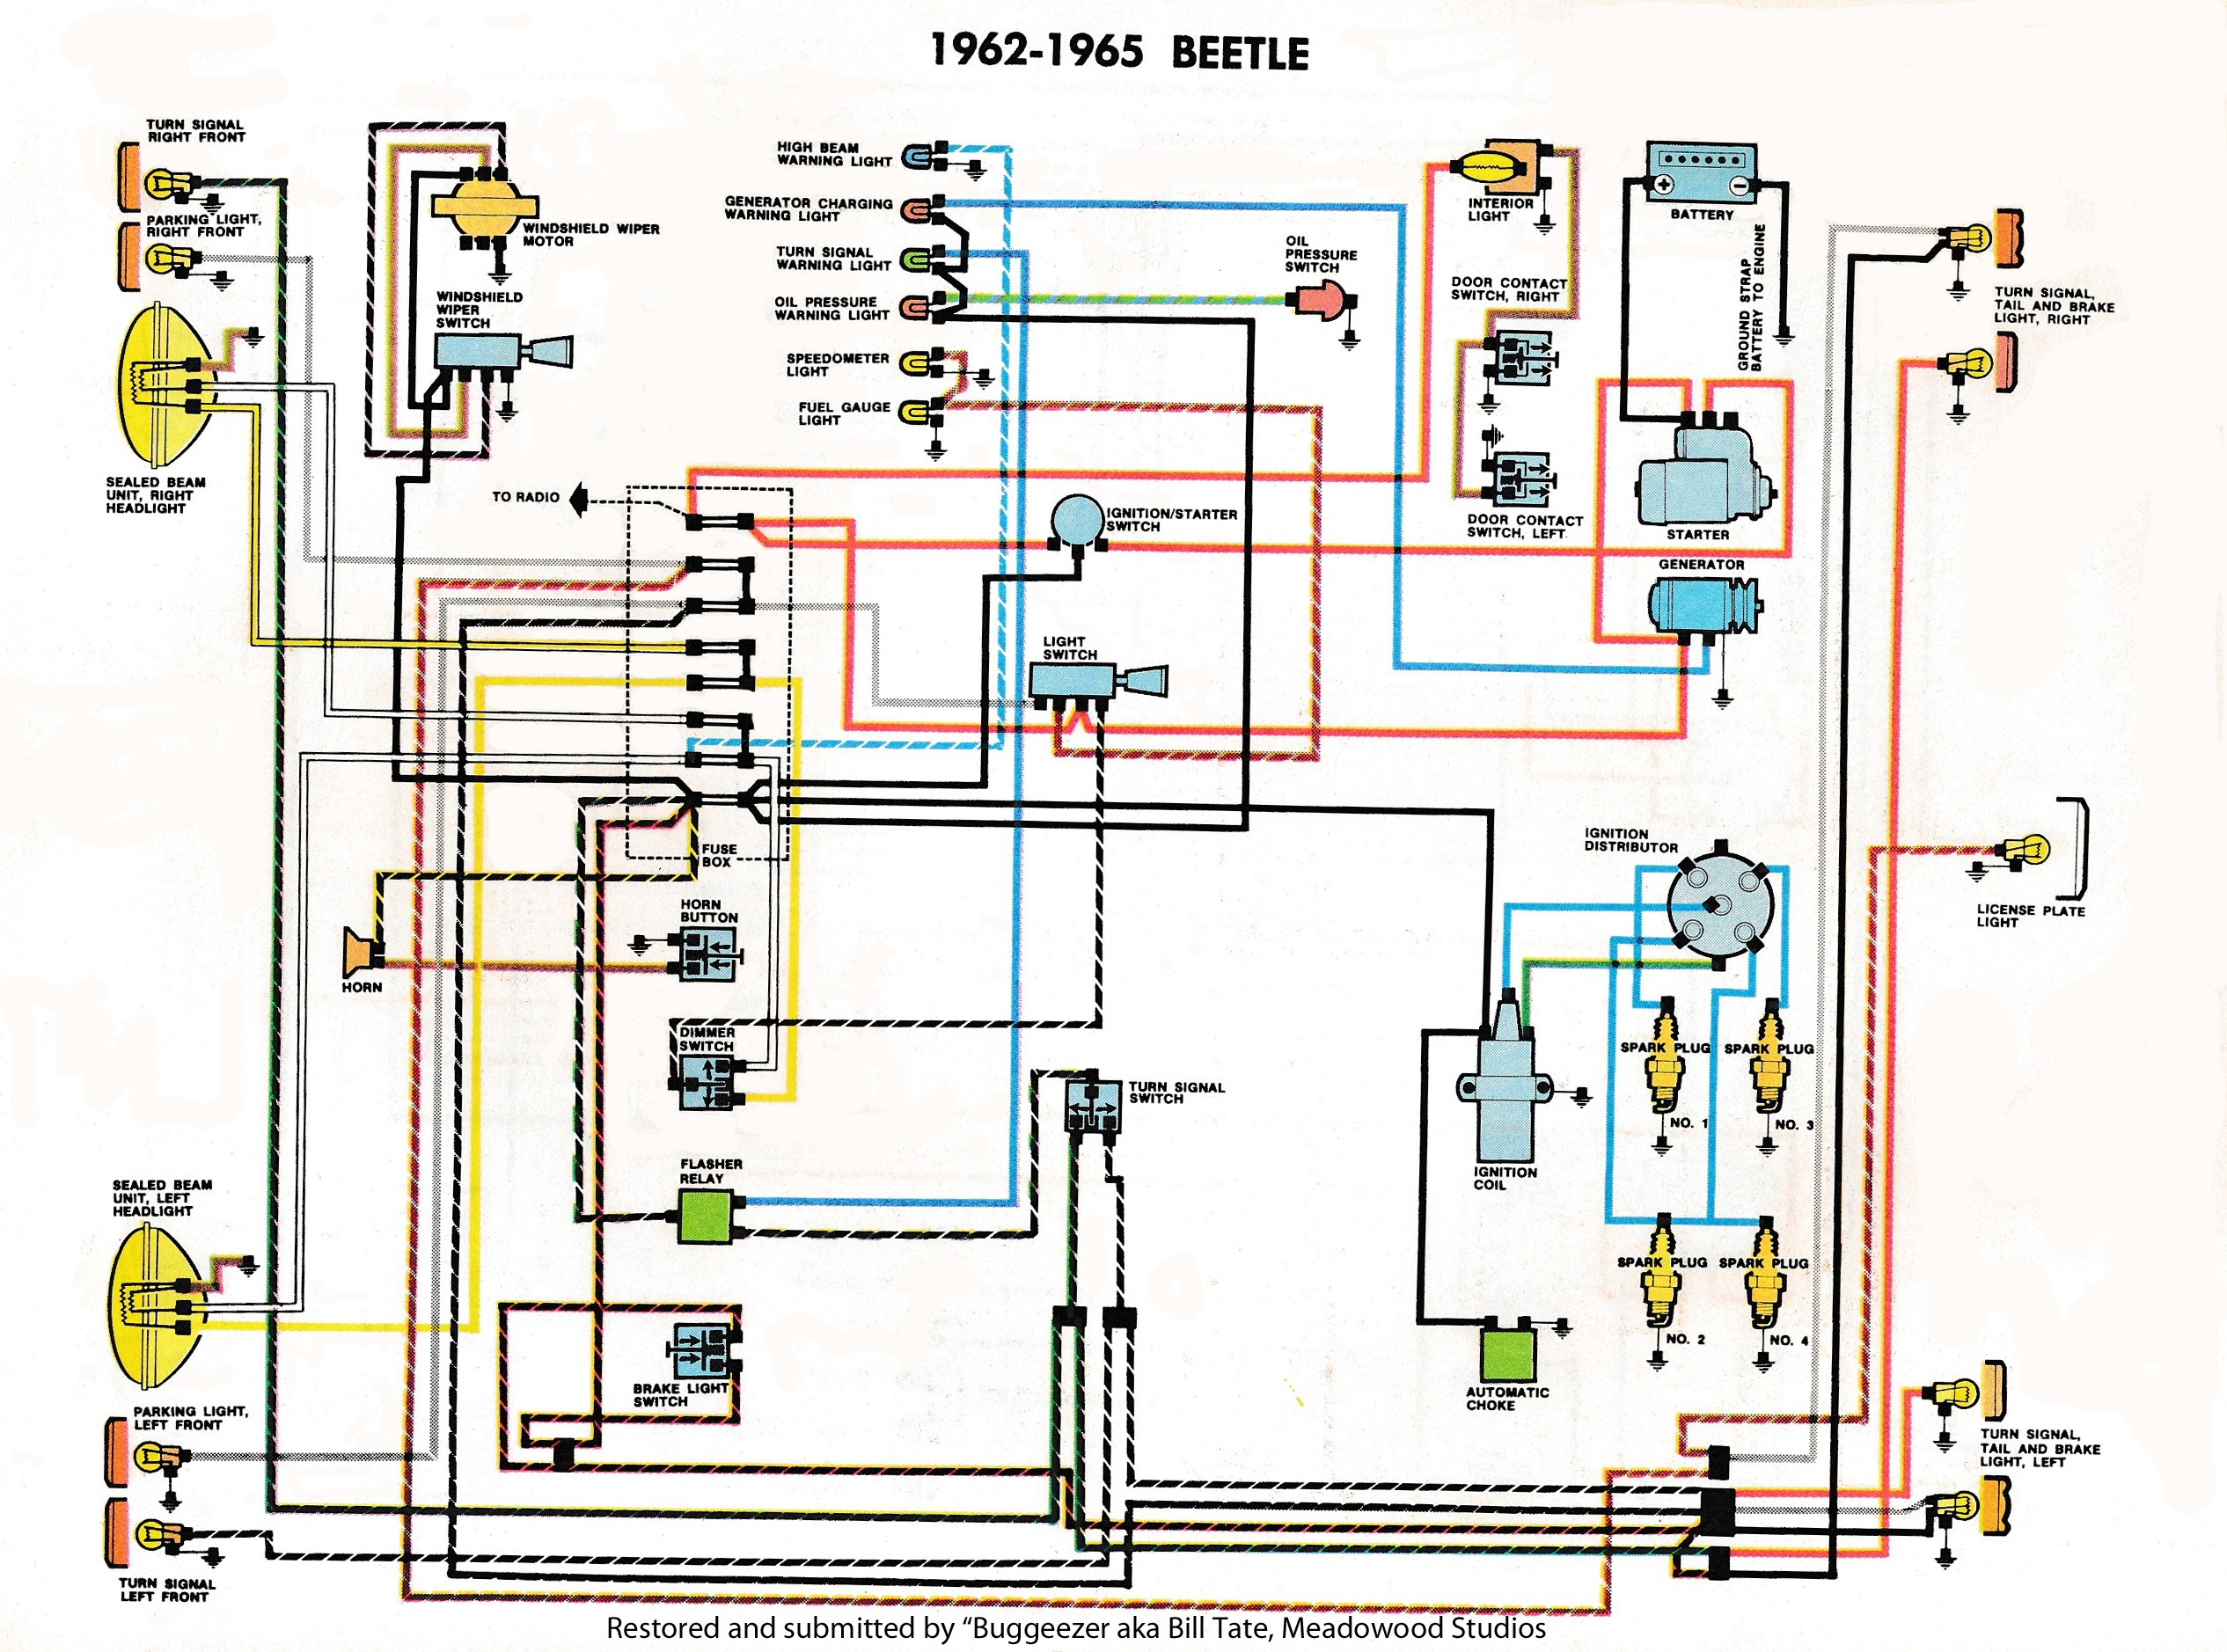 1970 Vw Beetle Engine Diagram Vw Beetle Turn Signal Wiring Diagram 1973 Vw Wiring Diagram Vw Of 1970 Vw Beetle Engine Diagram